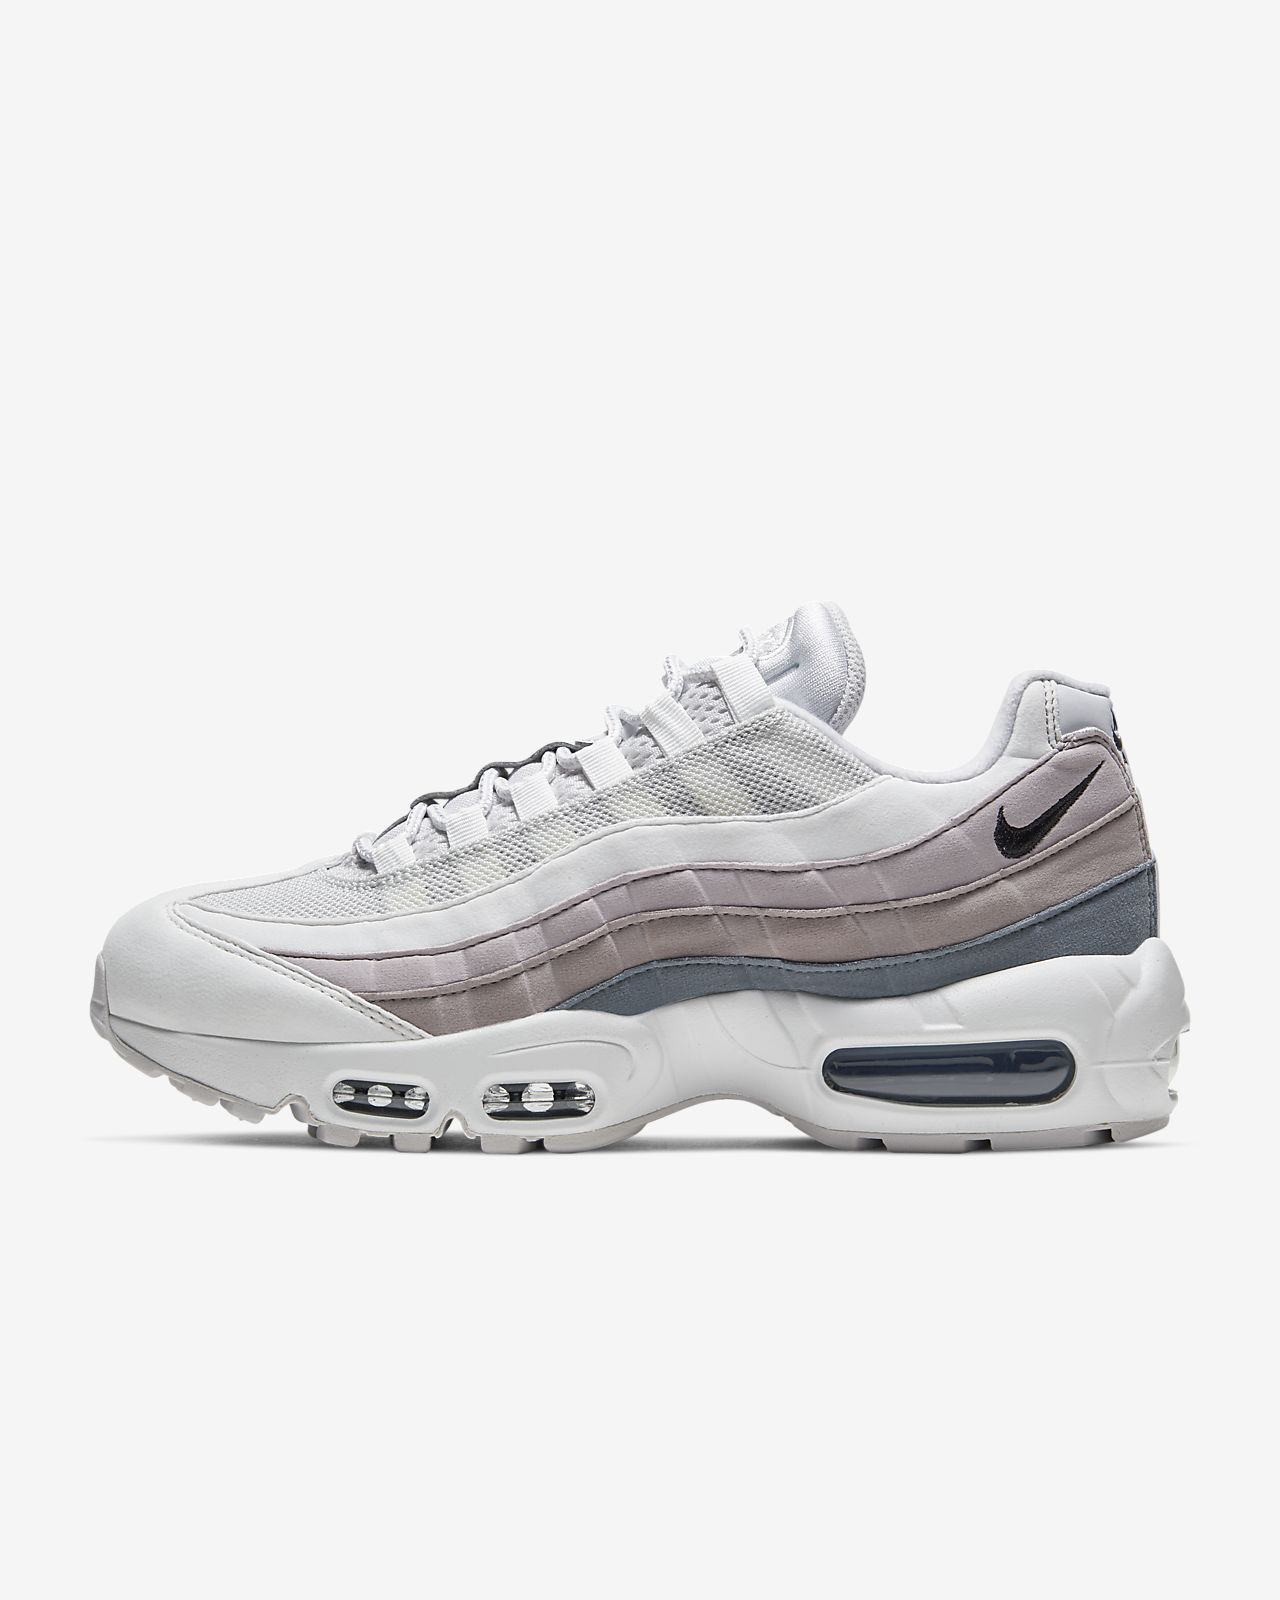 official photos c0018 4286d ... Nike Air Max 95 Women s Shoe